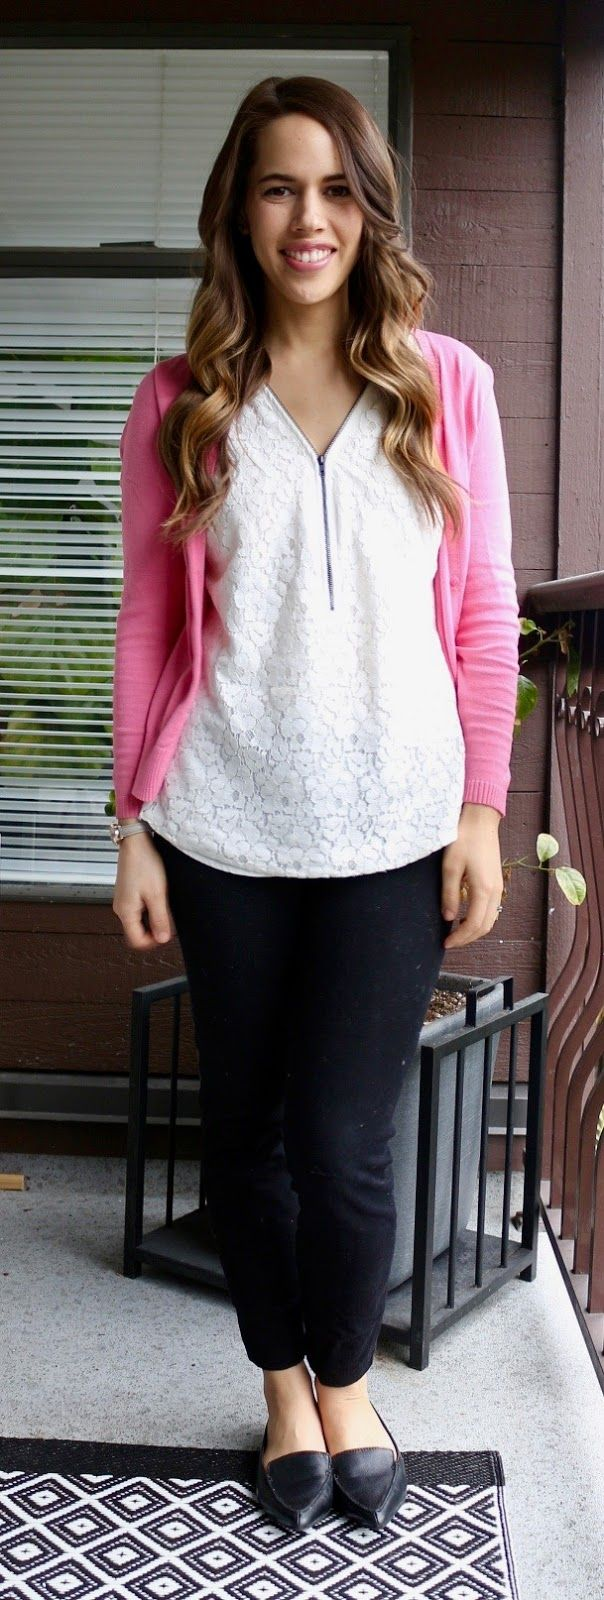 Jules in Flats – Lace Zip Front Tank and Pink Cardigan